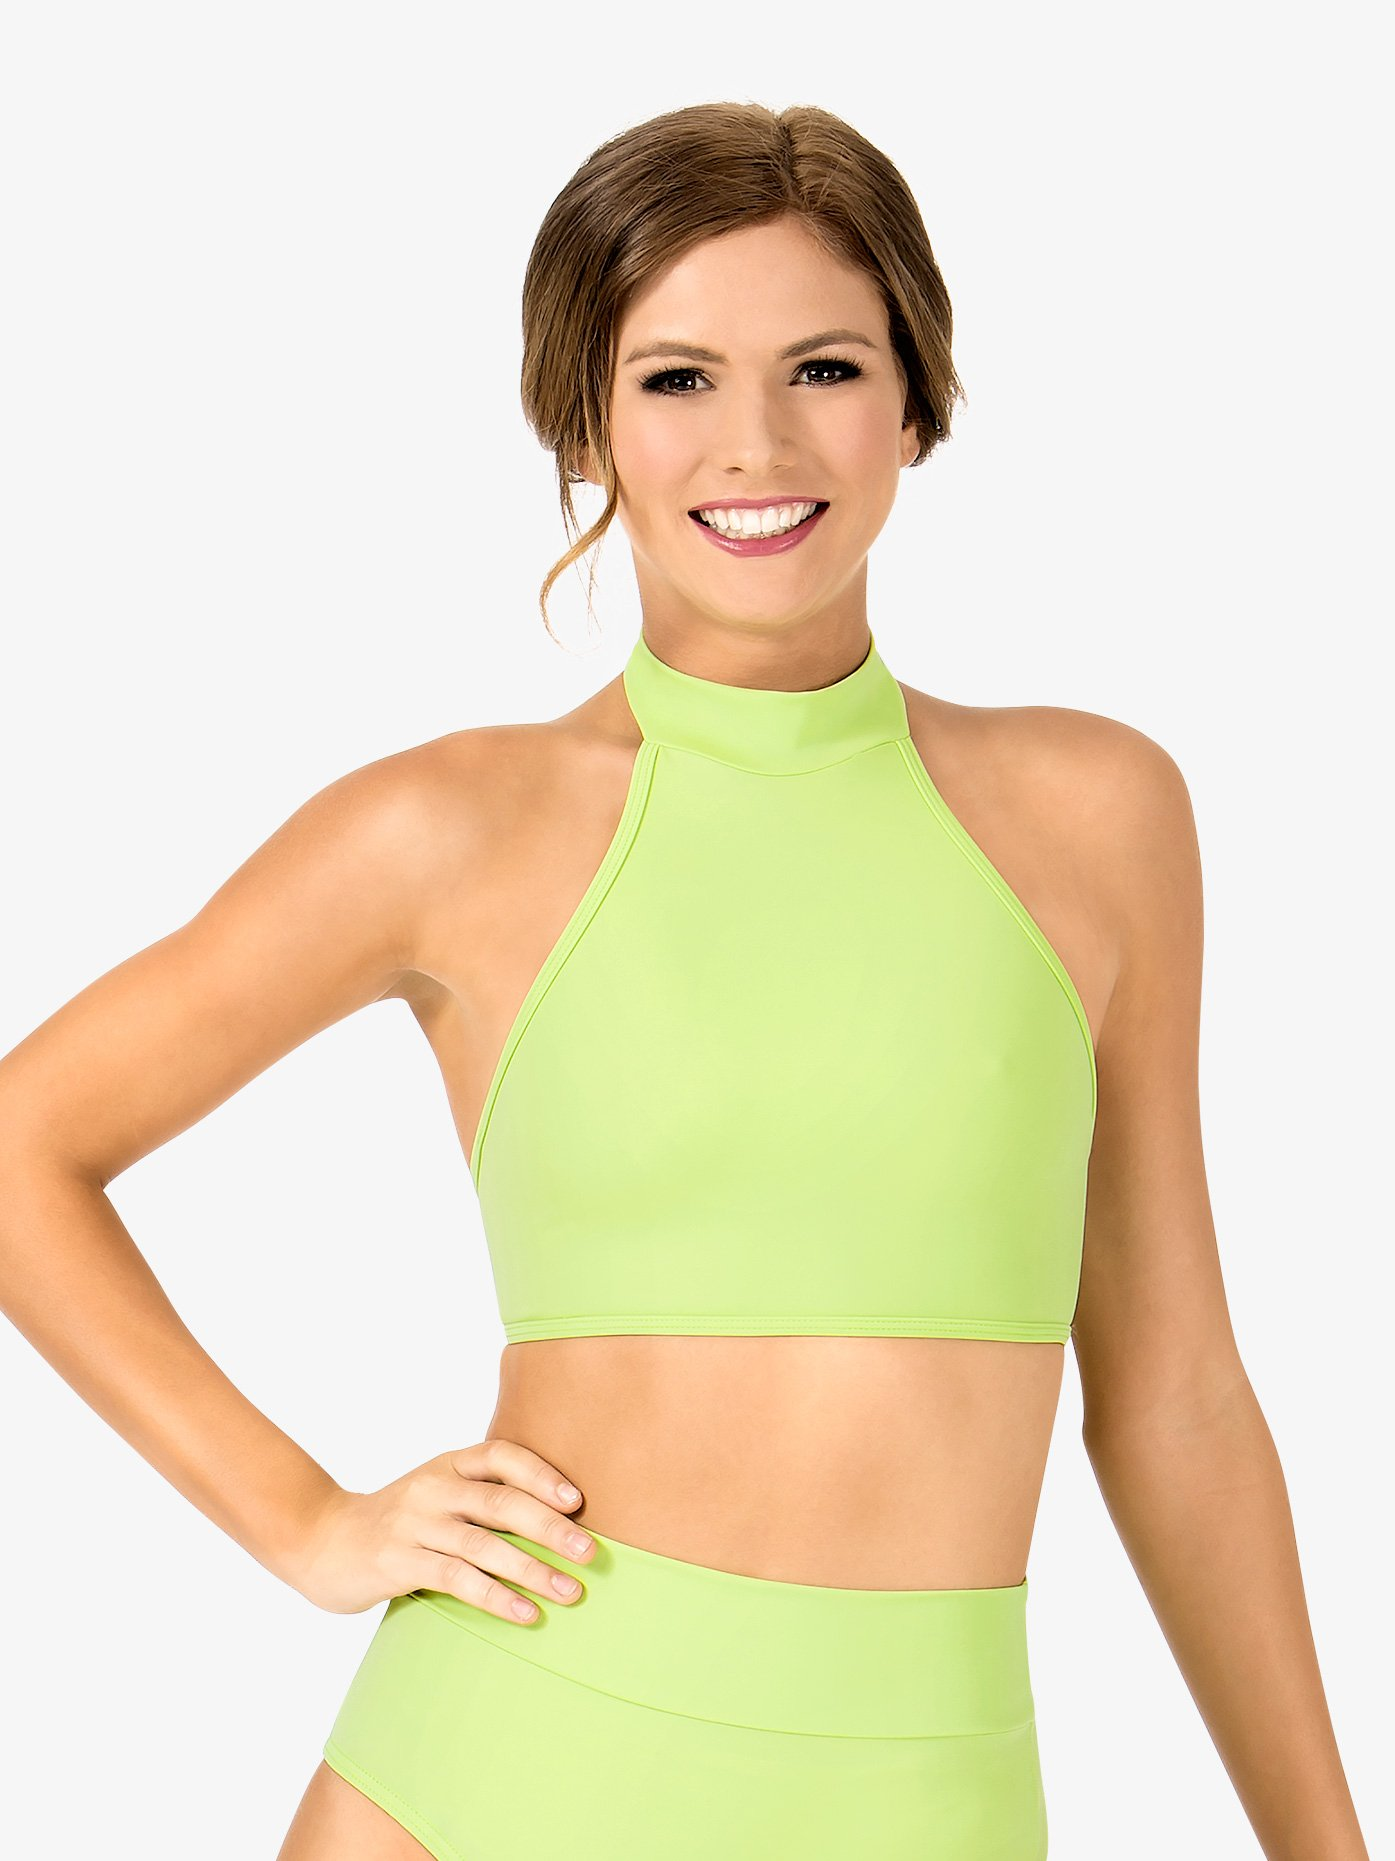 15f46fe5c7fe8 Adult Double Strap Halter Dance Crop Top - Style No NL9019. Loading zoom